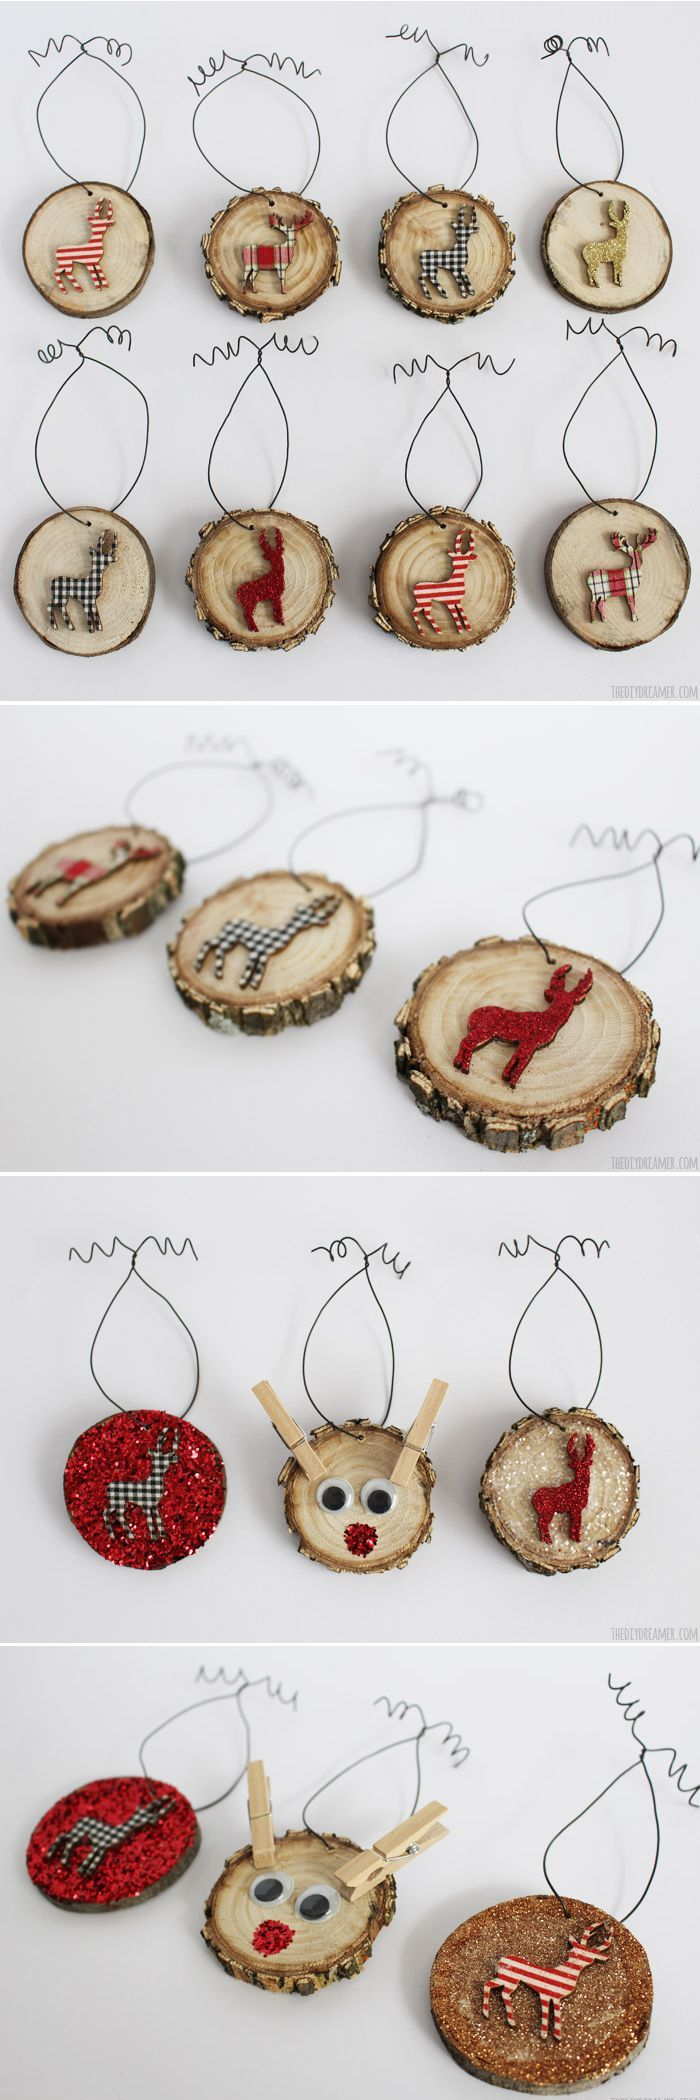 Wood slice ornaments add the perfect touch to your Rustic Christmas theme, especially if you decorate them with deer and Rudolph The Red Nosed Reindeer! http://thediydreamer.com